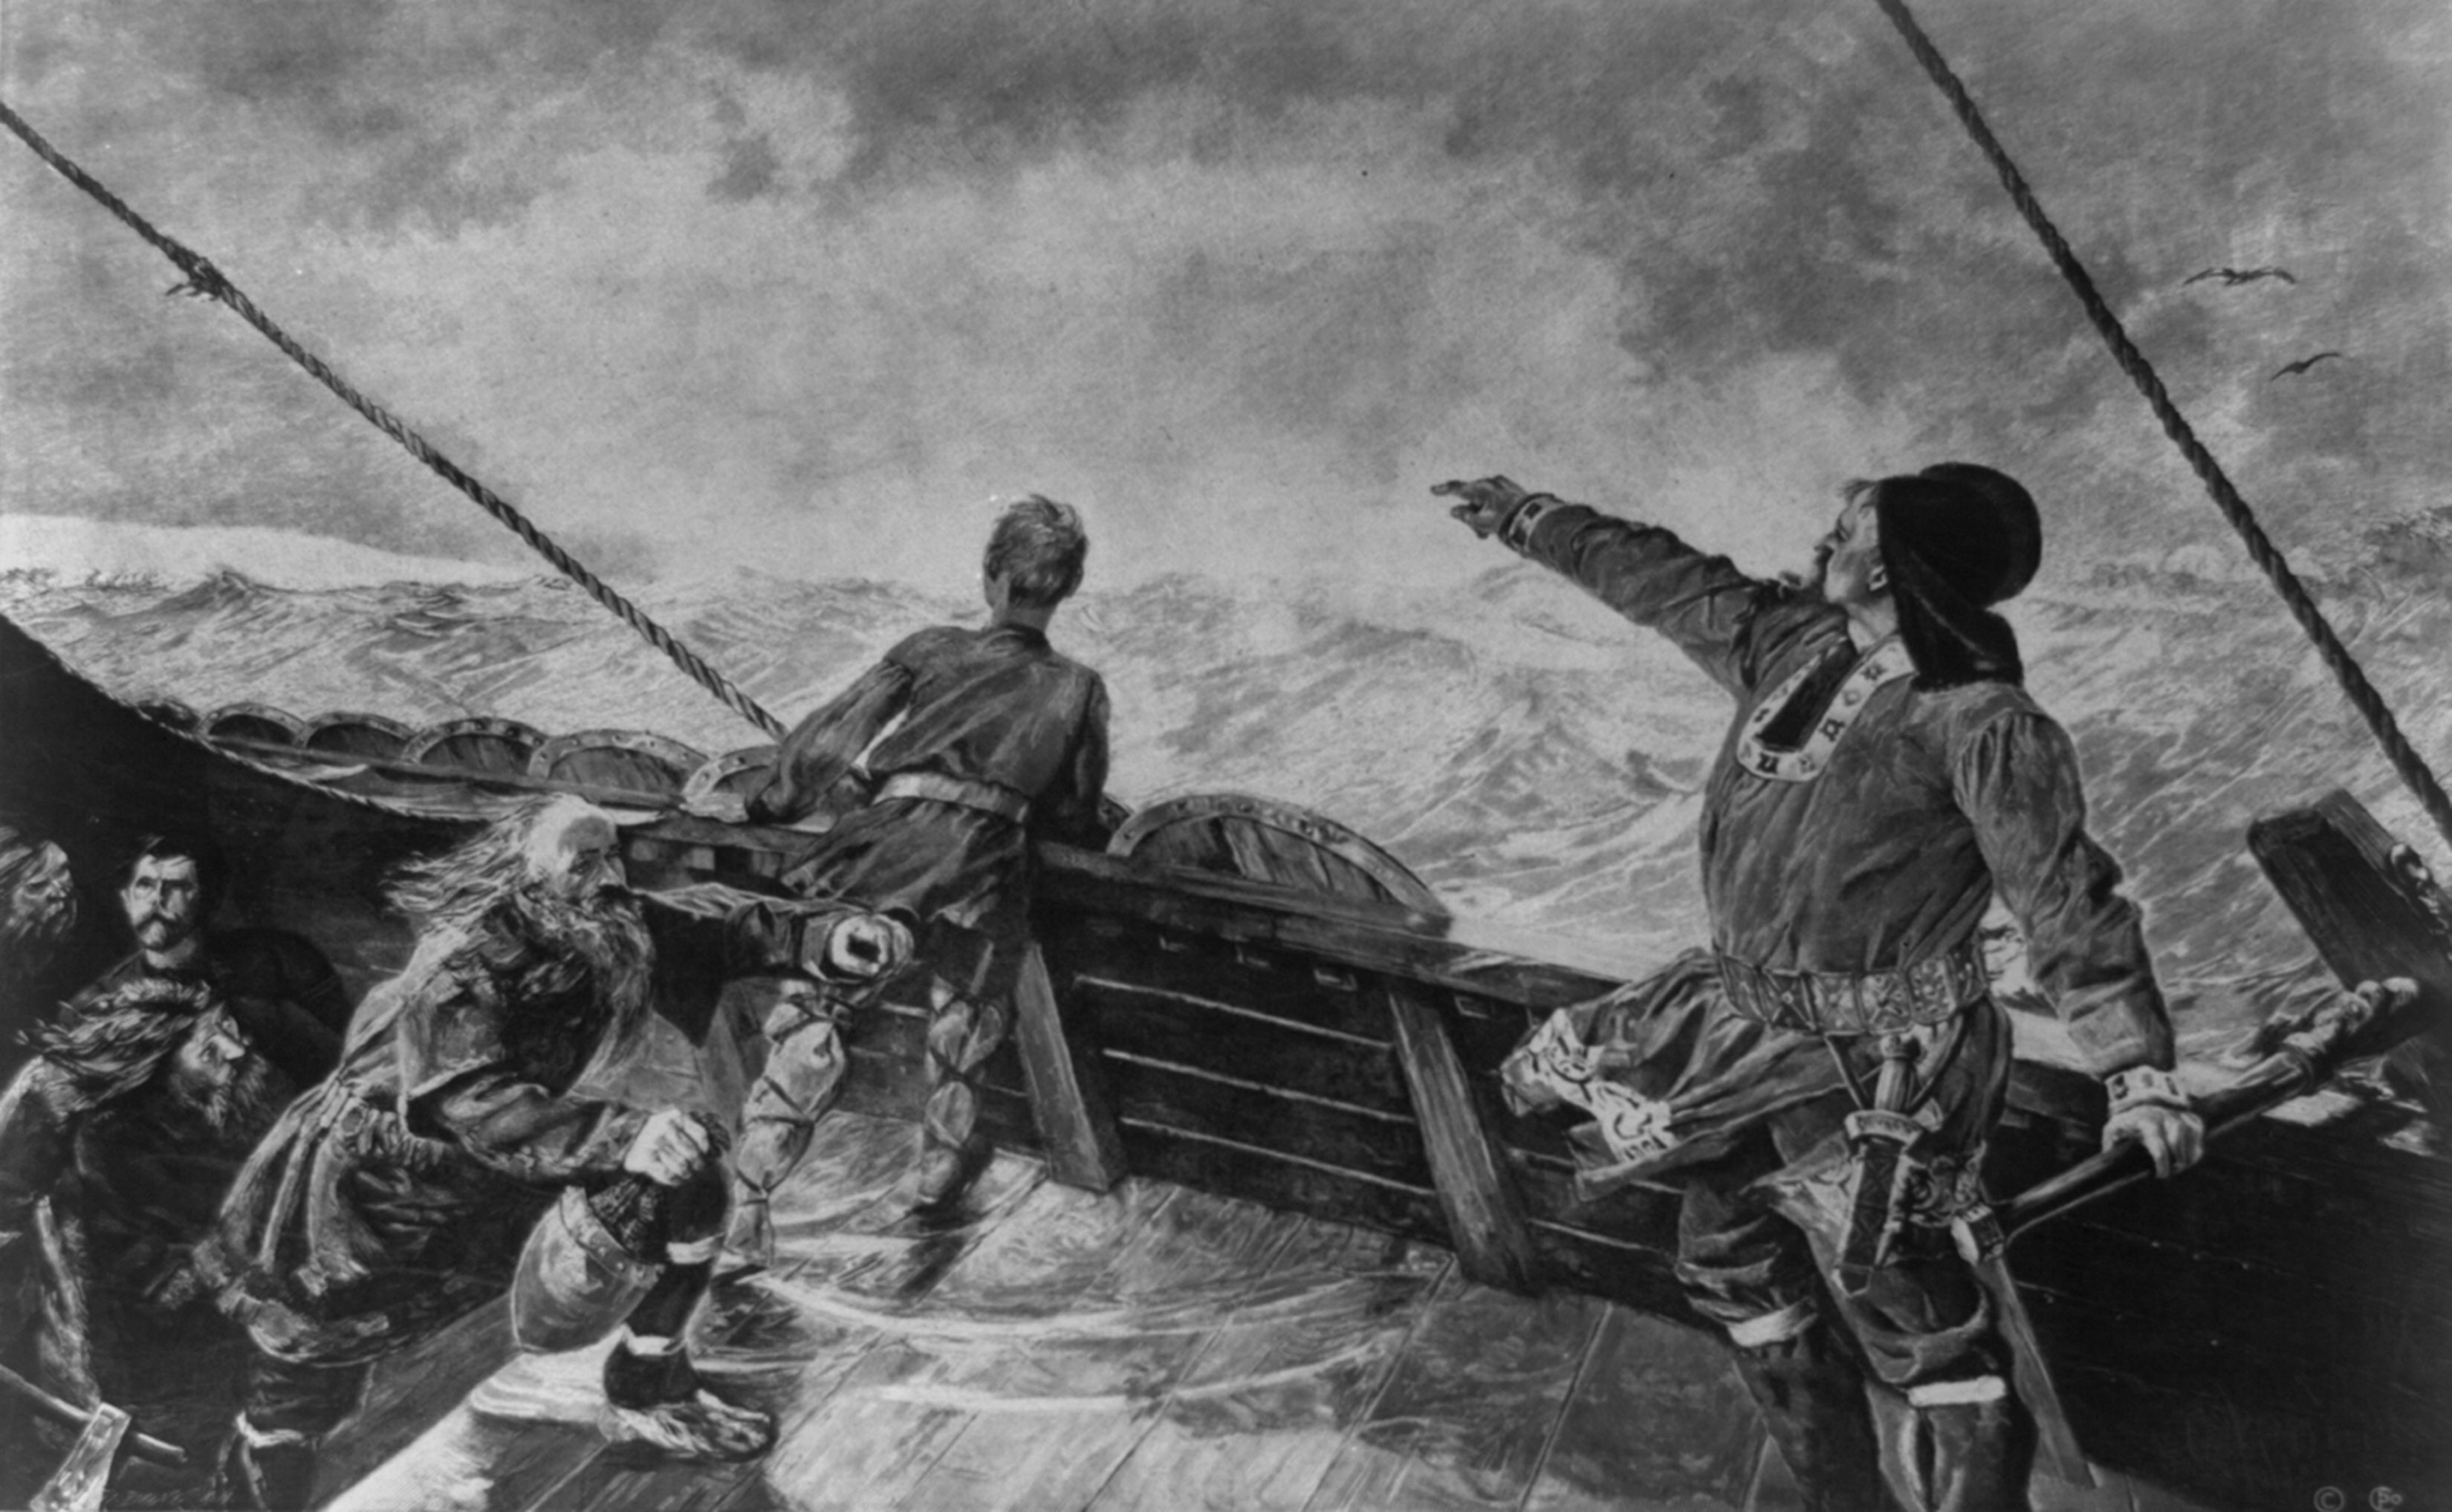 Image Of Leif Eriksson Pointing To The Shore As He Stears